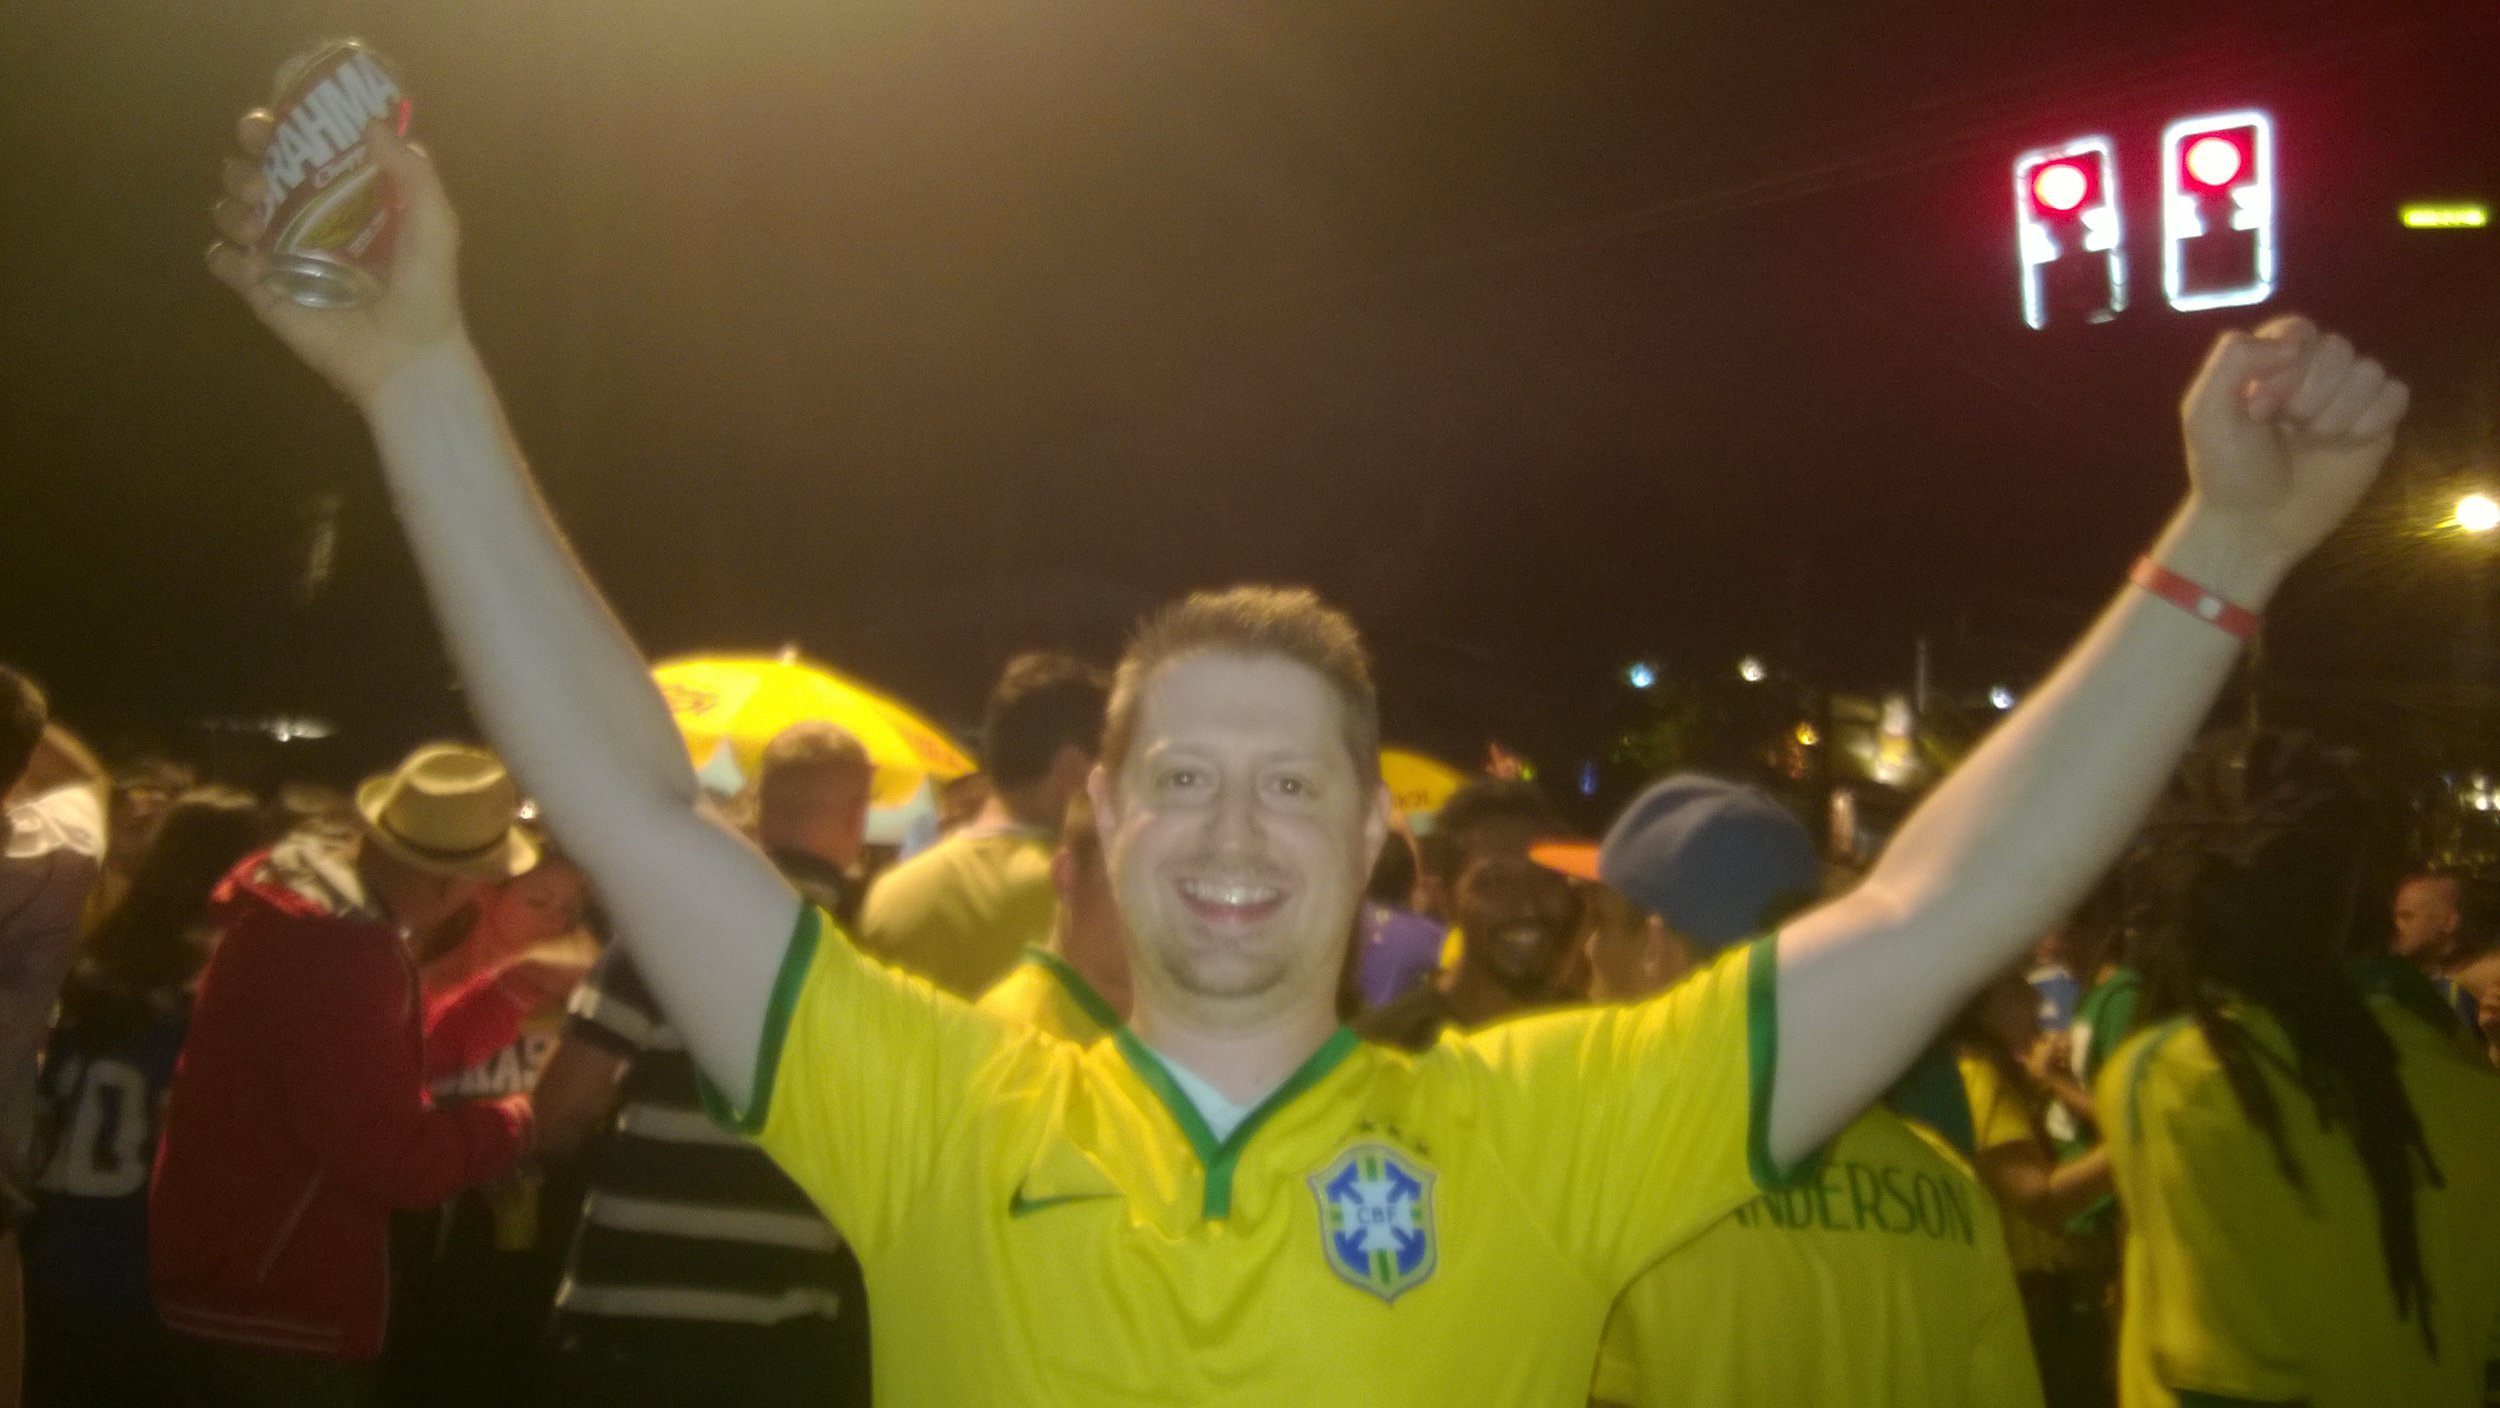 Celebrating Brazil's victory in the streets of Vila Madalena